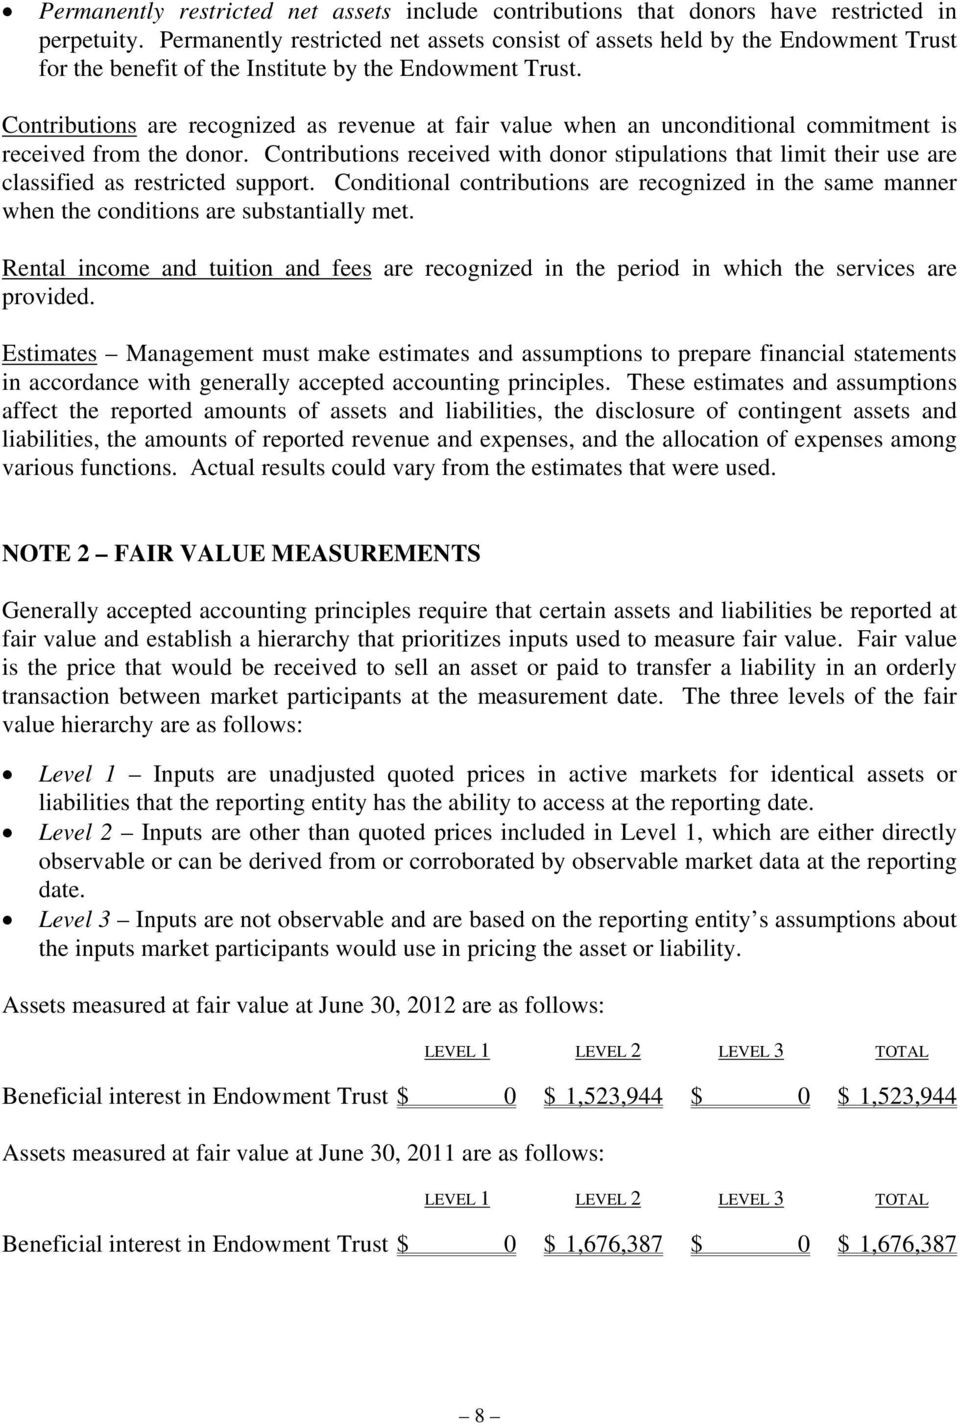 Contributions are recognized as revenue at fair value when an unconditional commitment is received from the donor.